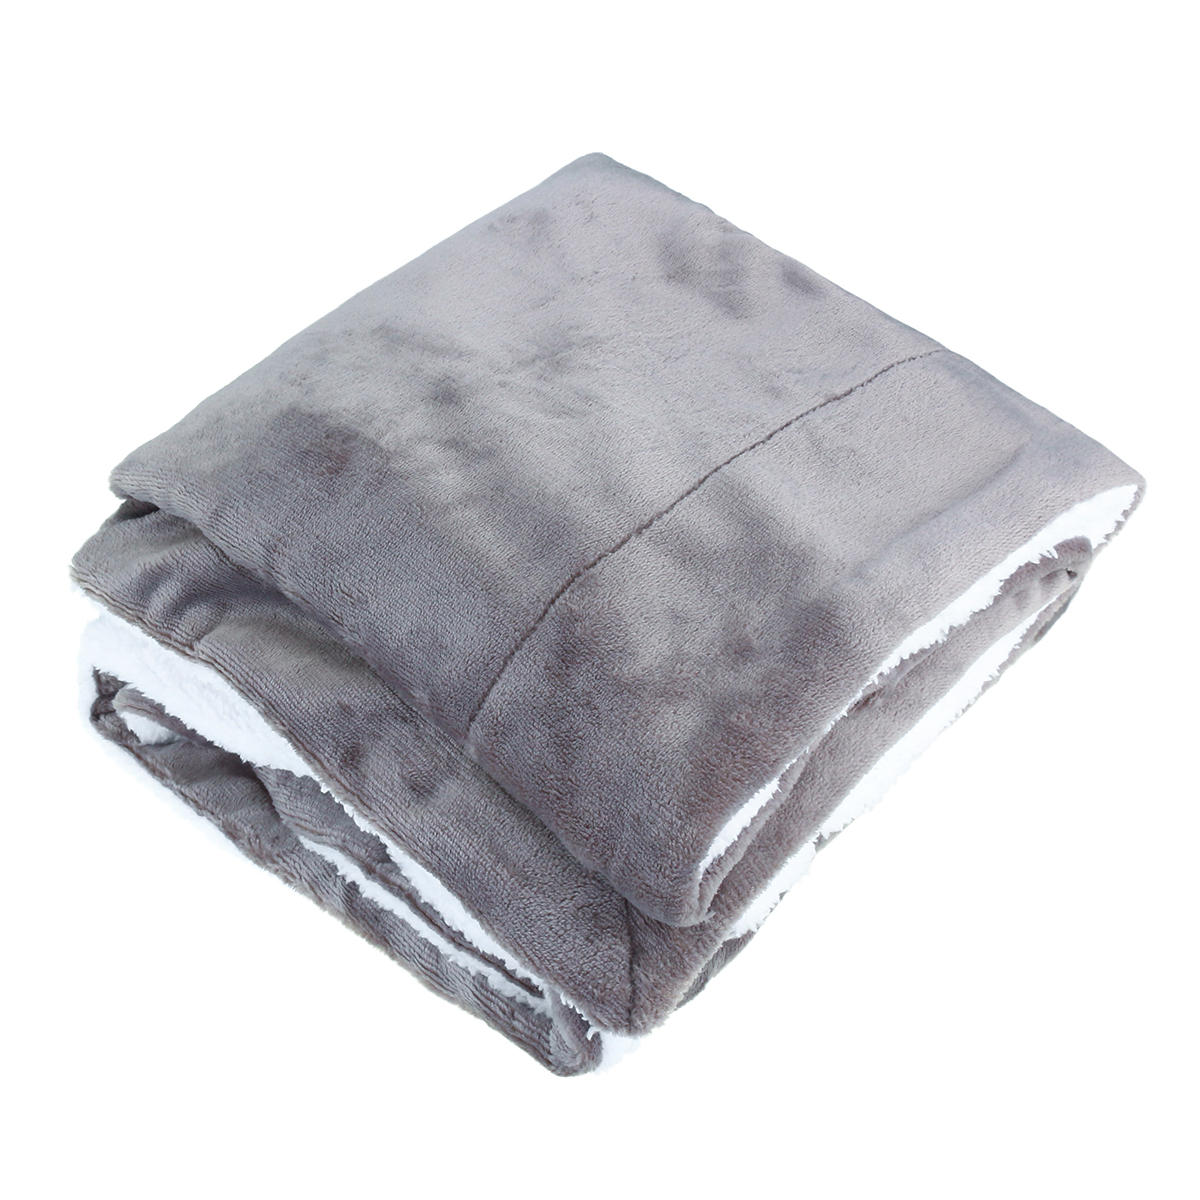 4 Colors Flannel Sherpa Throws Fleece Blankets Sofa Bedding Office Sleep Large Double King Soft Warm - 3